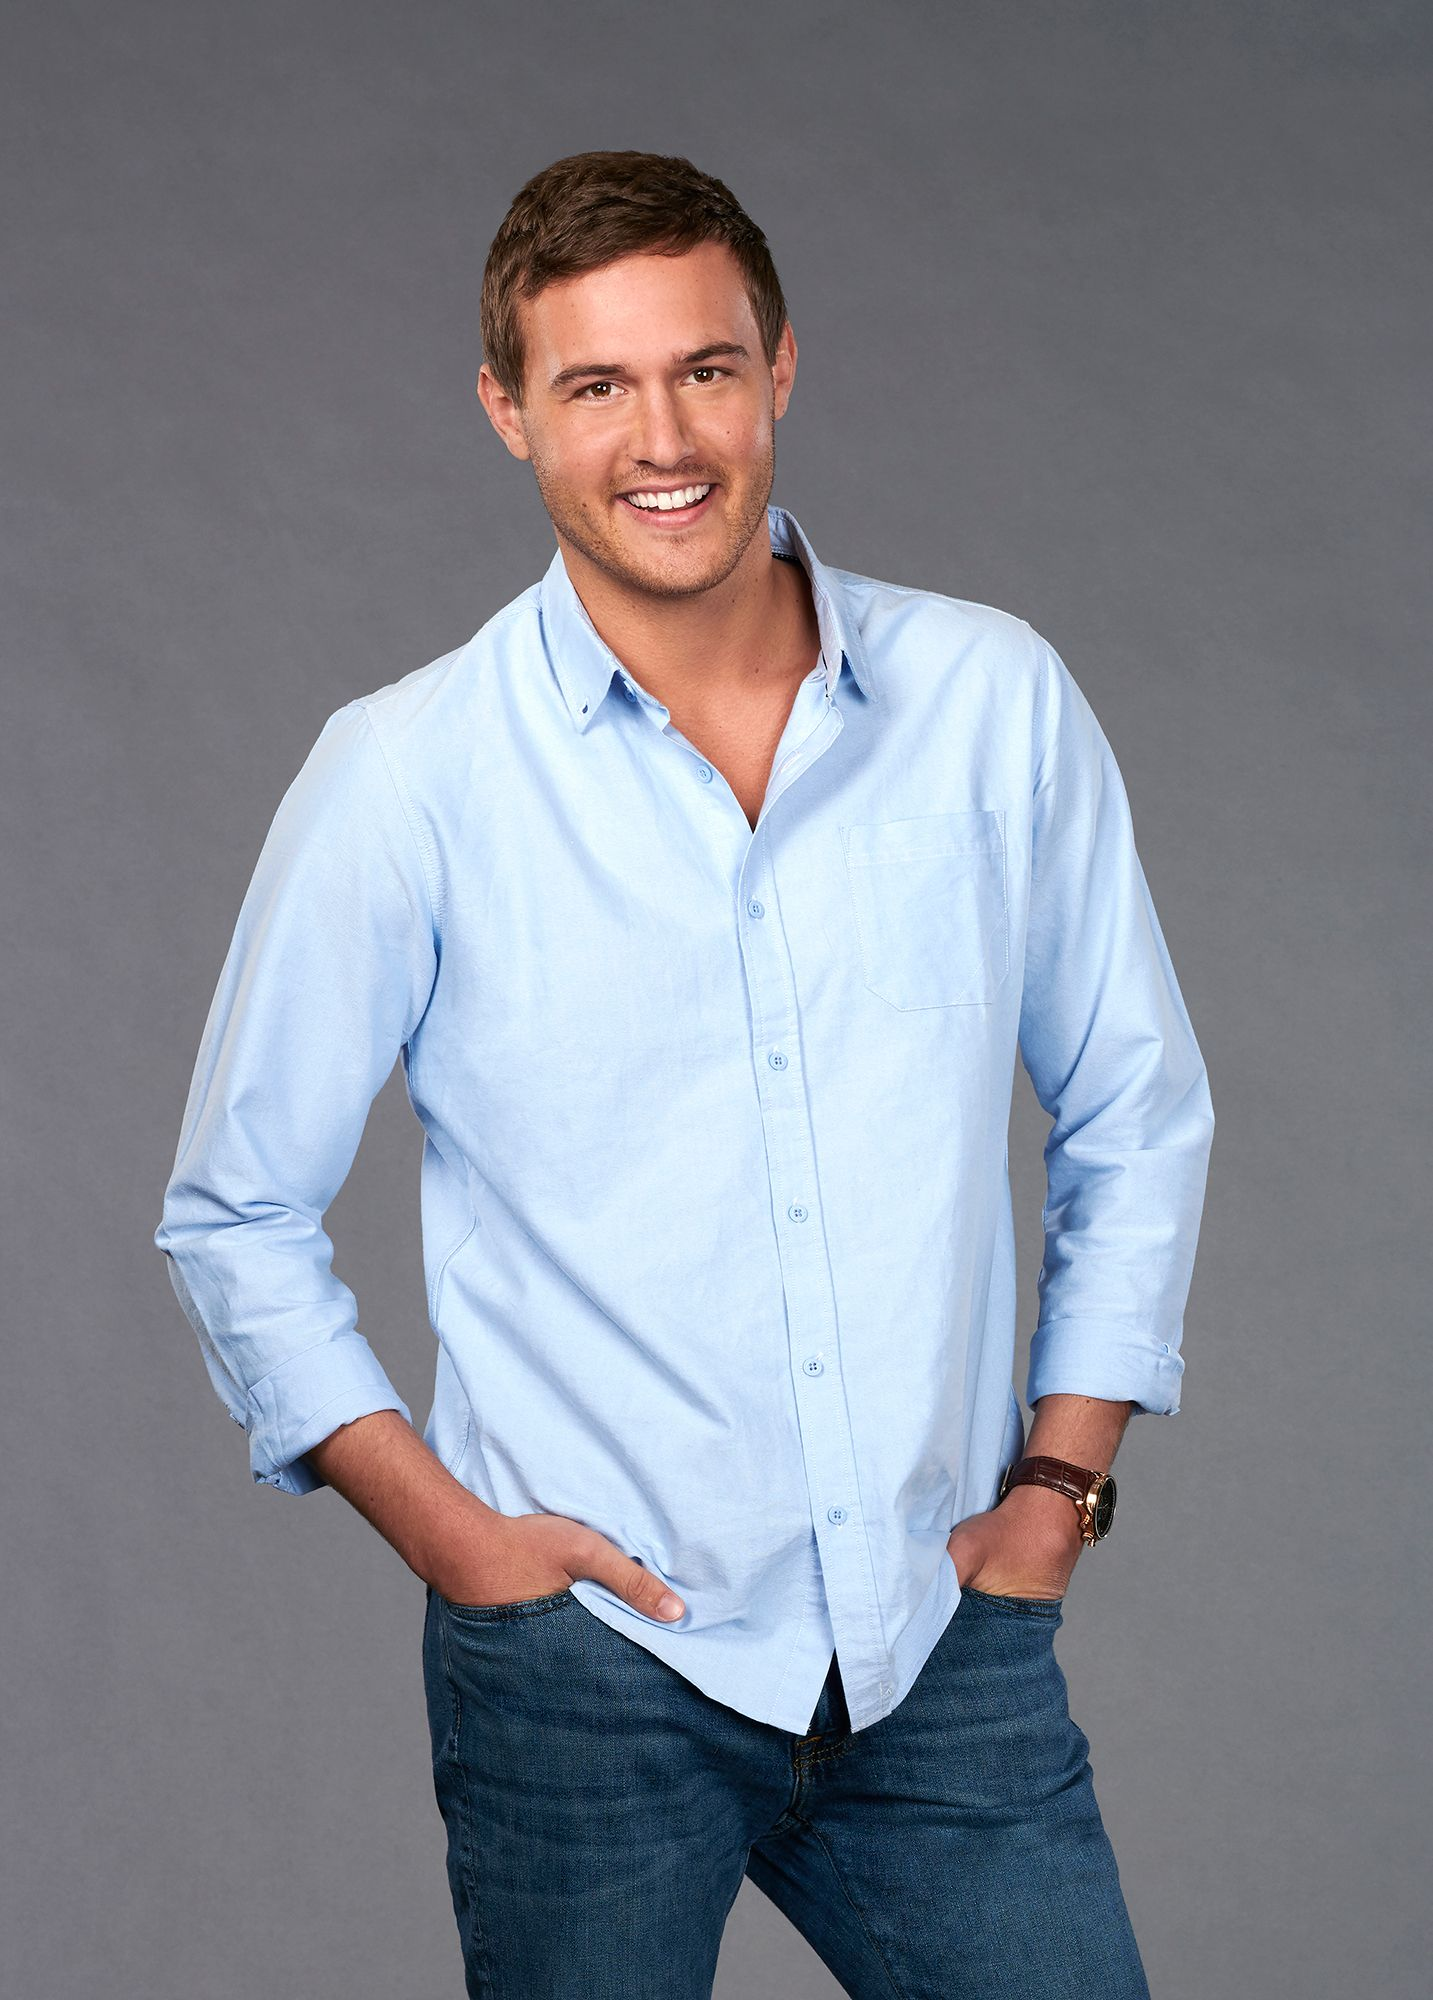 New Bachelor 2020.Why Peter Weber Was Chosen As The Next Bachelor Over Mike